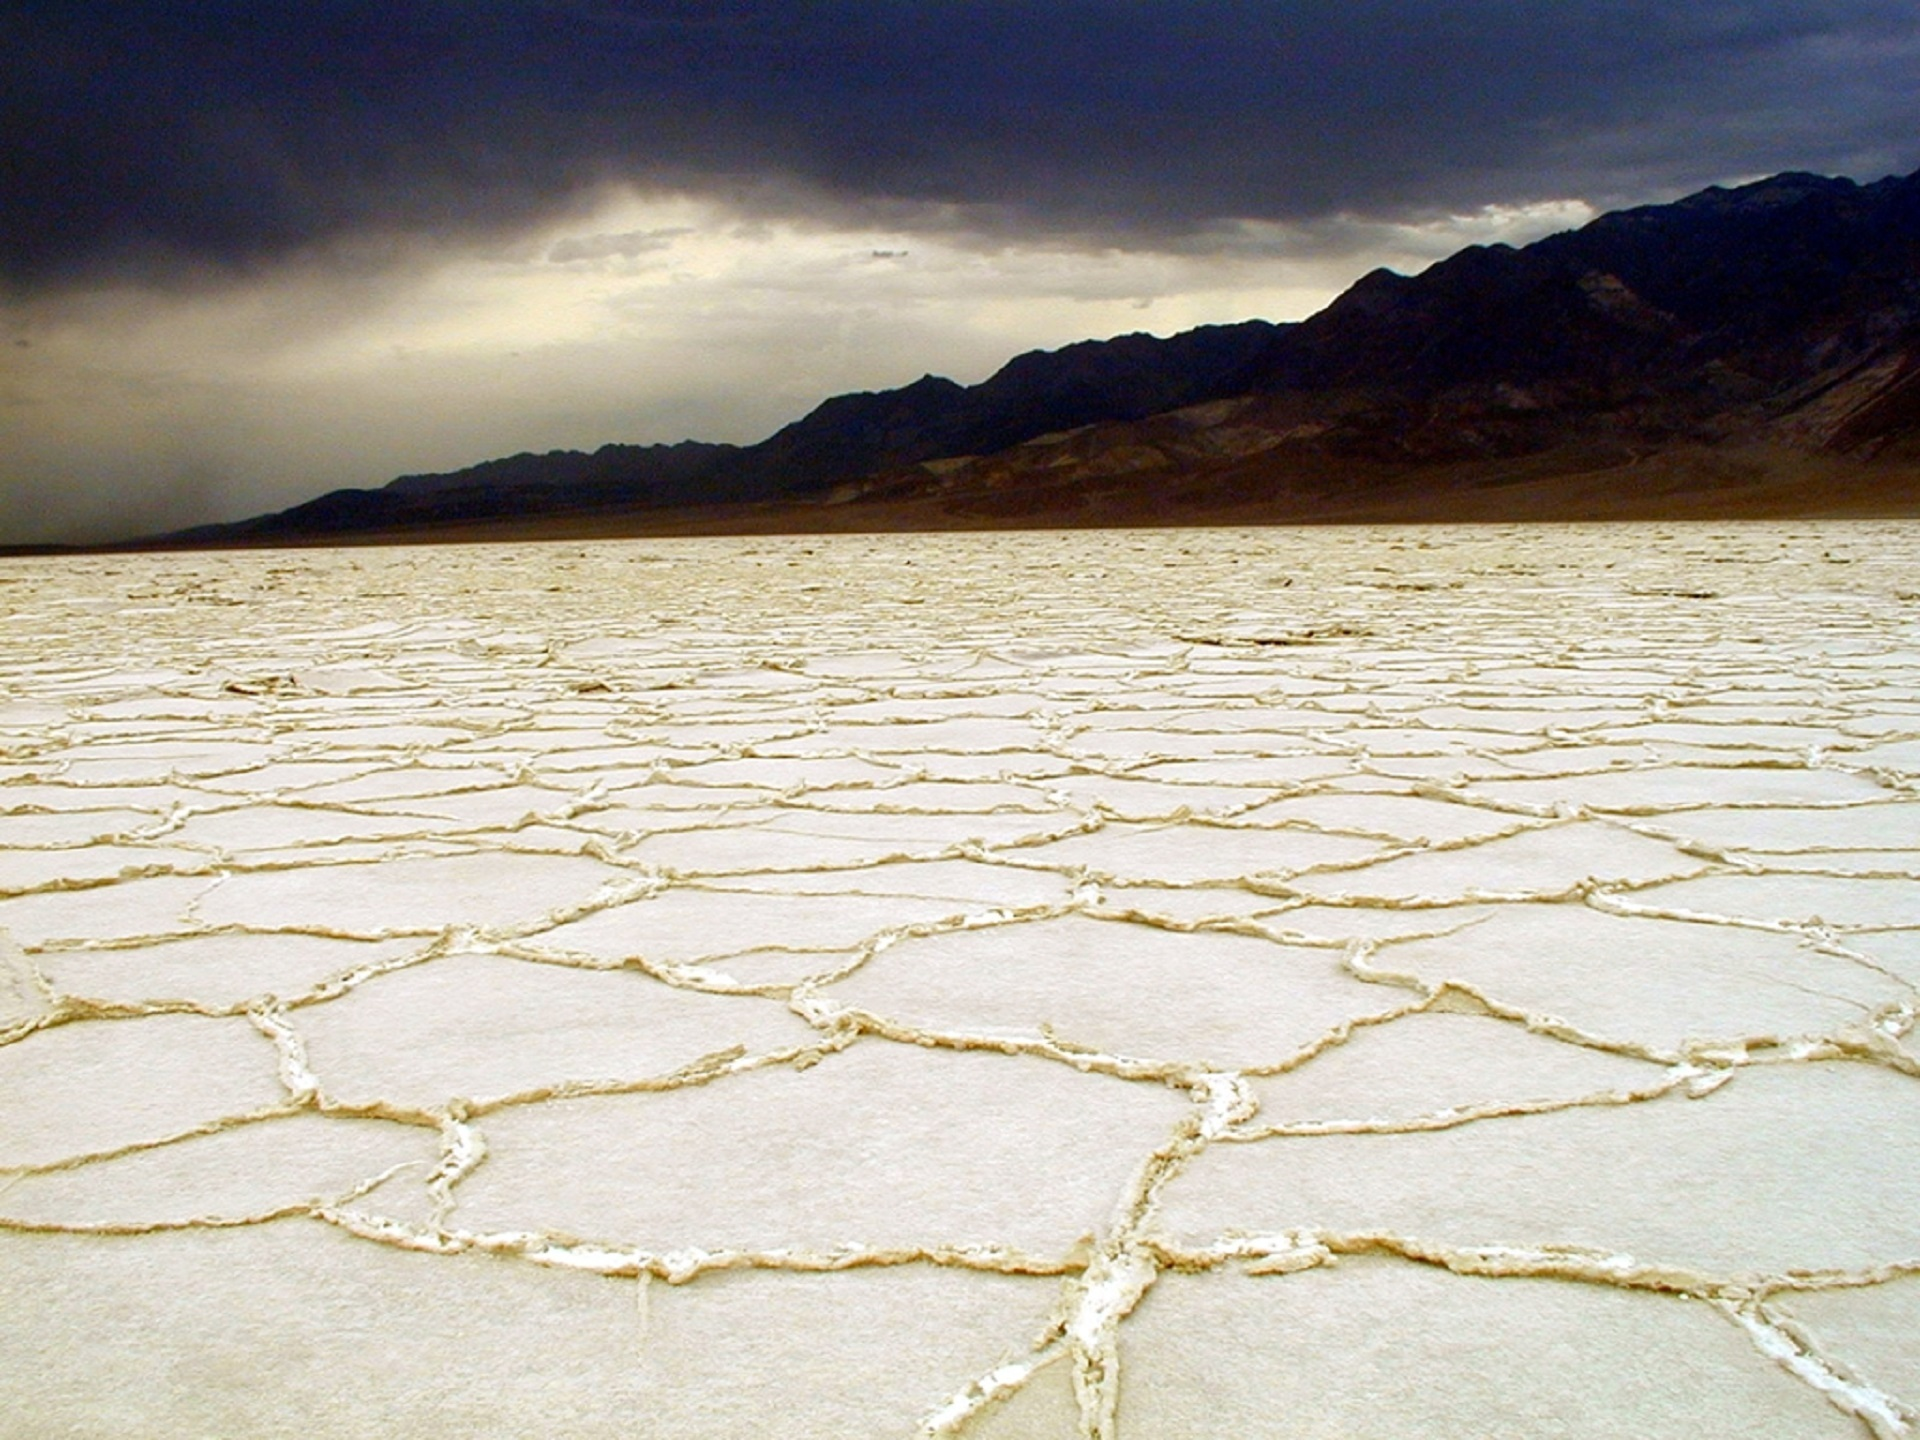 Salt on the Flat Land, Salt, Salty, Nature, Landscape, HQ Photo